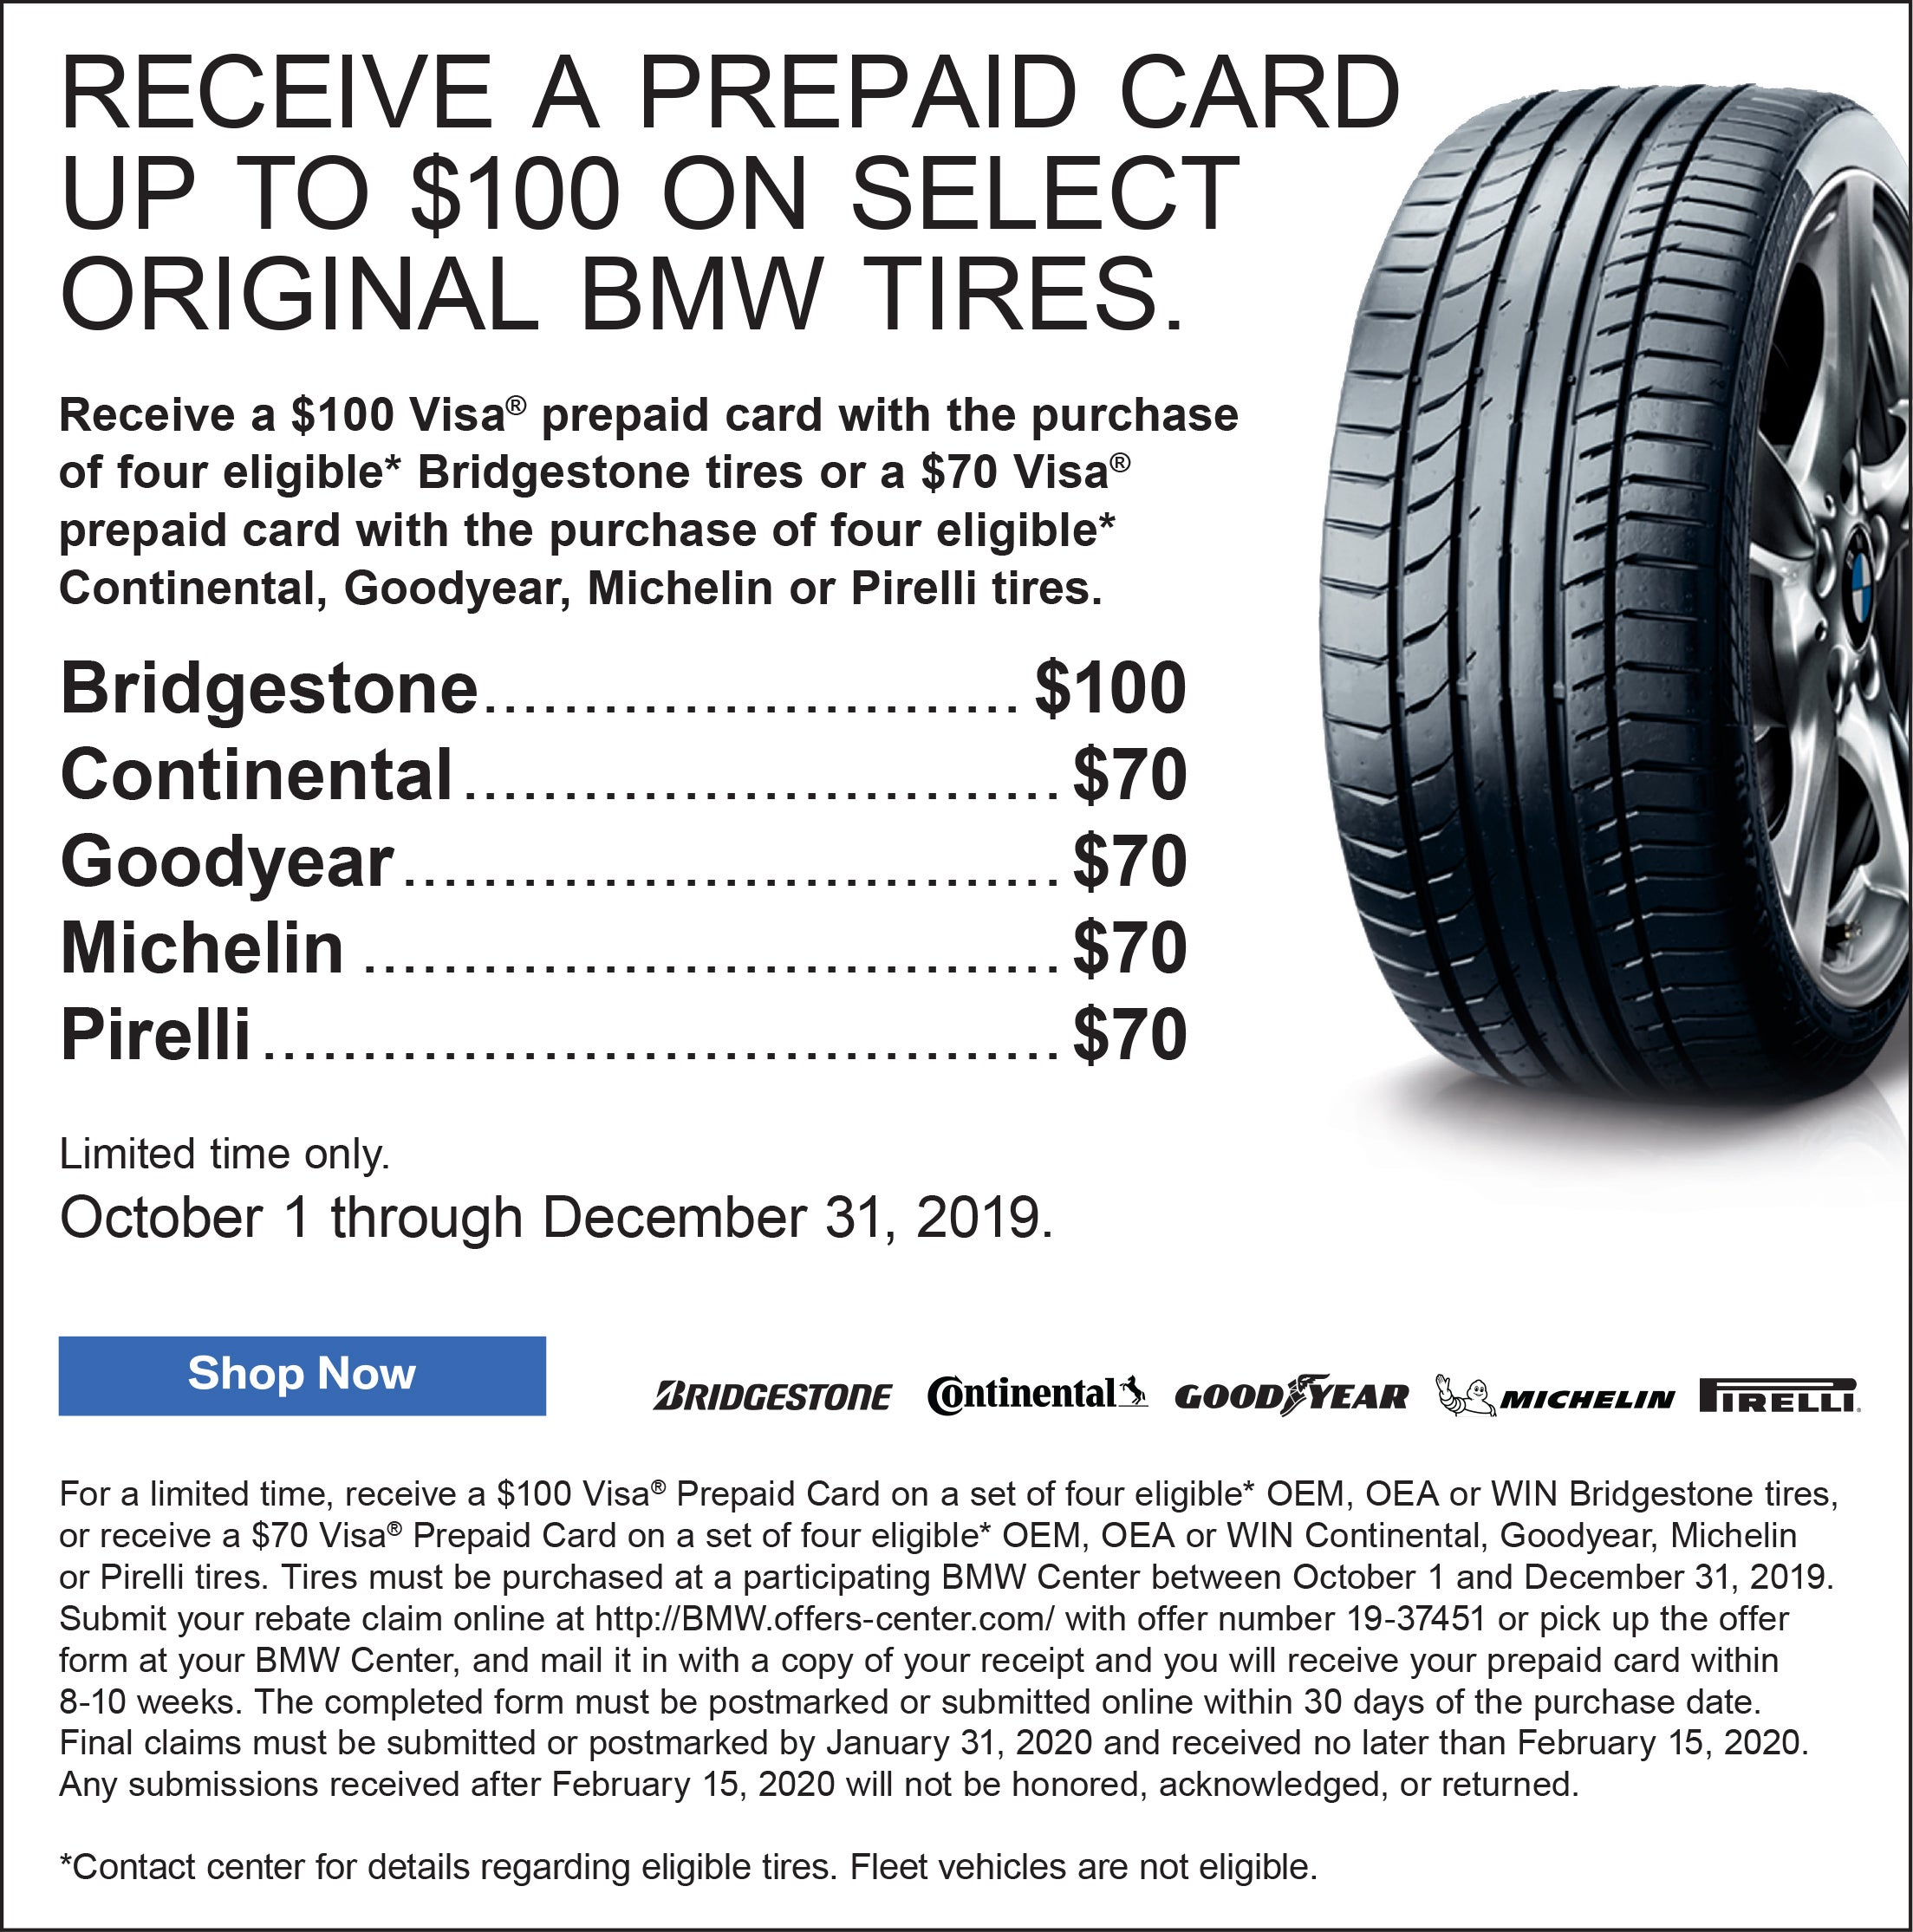 Tires Near Me Open Now >> Receive A Prepaid Card Up To 100 On Select Original Bmw